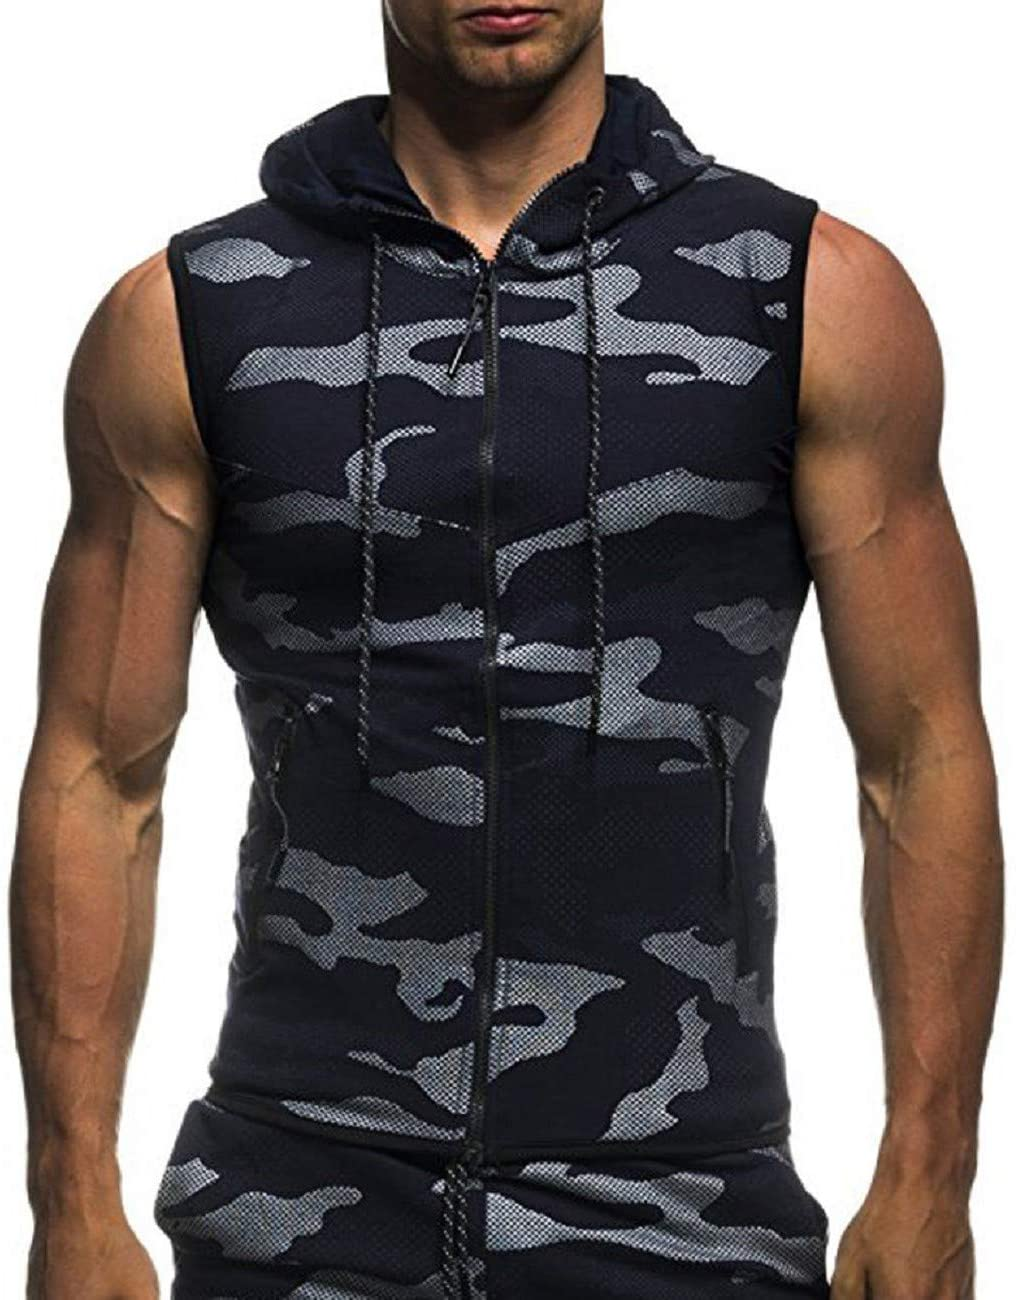 FAPIZI Men's Workout Hooded Tank Tops Camouflage Bodybuilding Muscle Cut Off T Shirt Sleeveless Gym Hoodies Vest